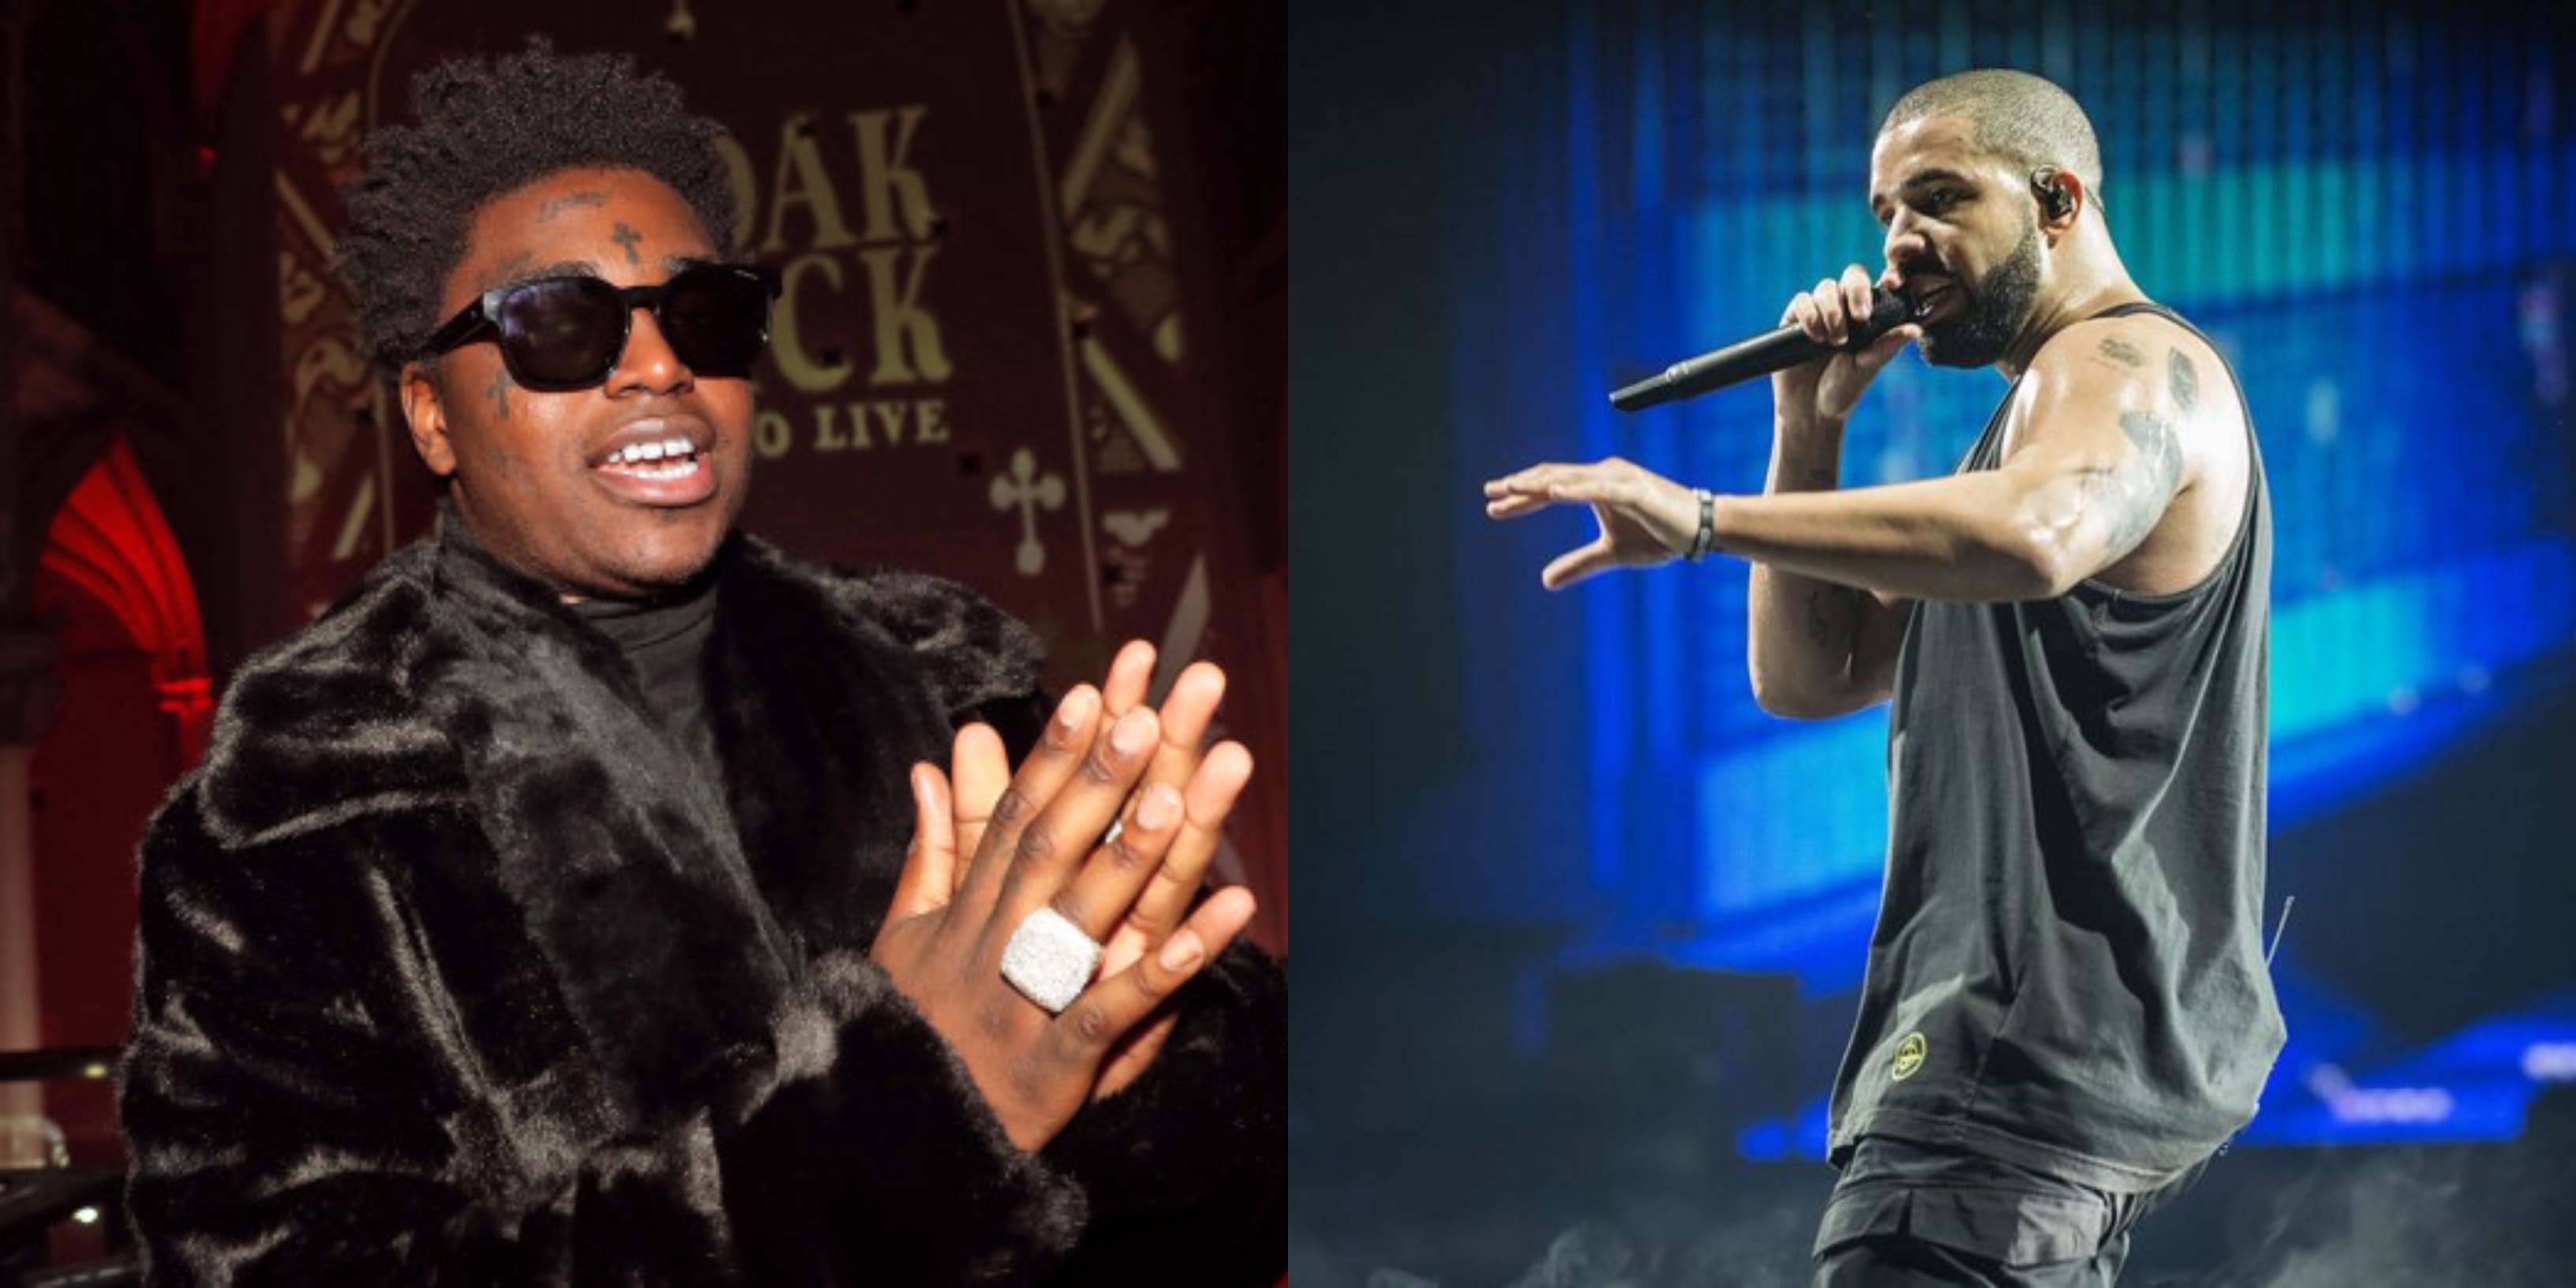 Drake Praises Kodak Black's Latest Album: 'One of My Favorites in the Last 5 Years'